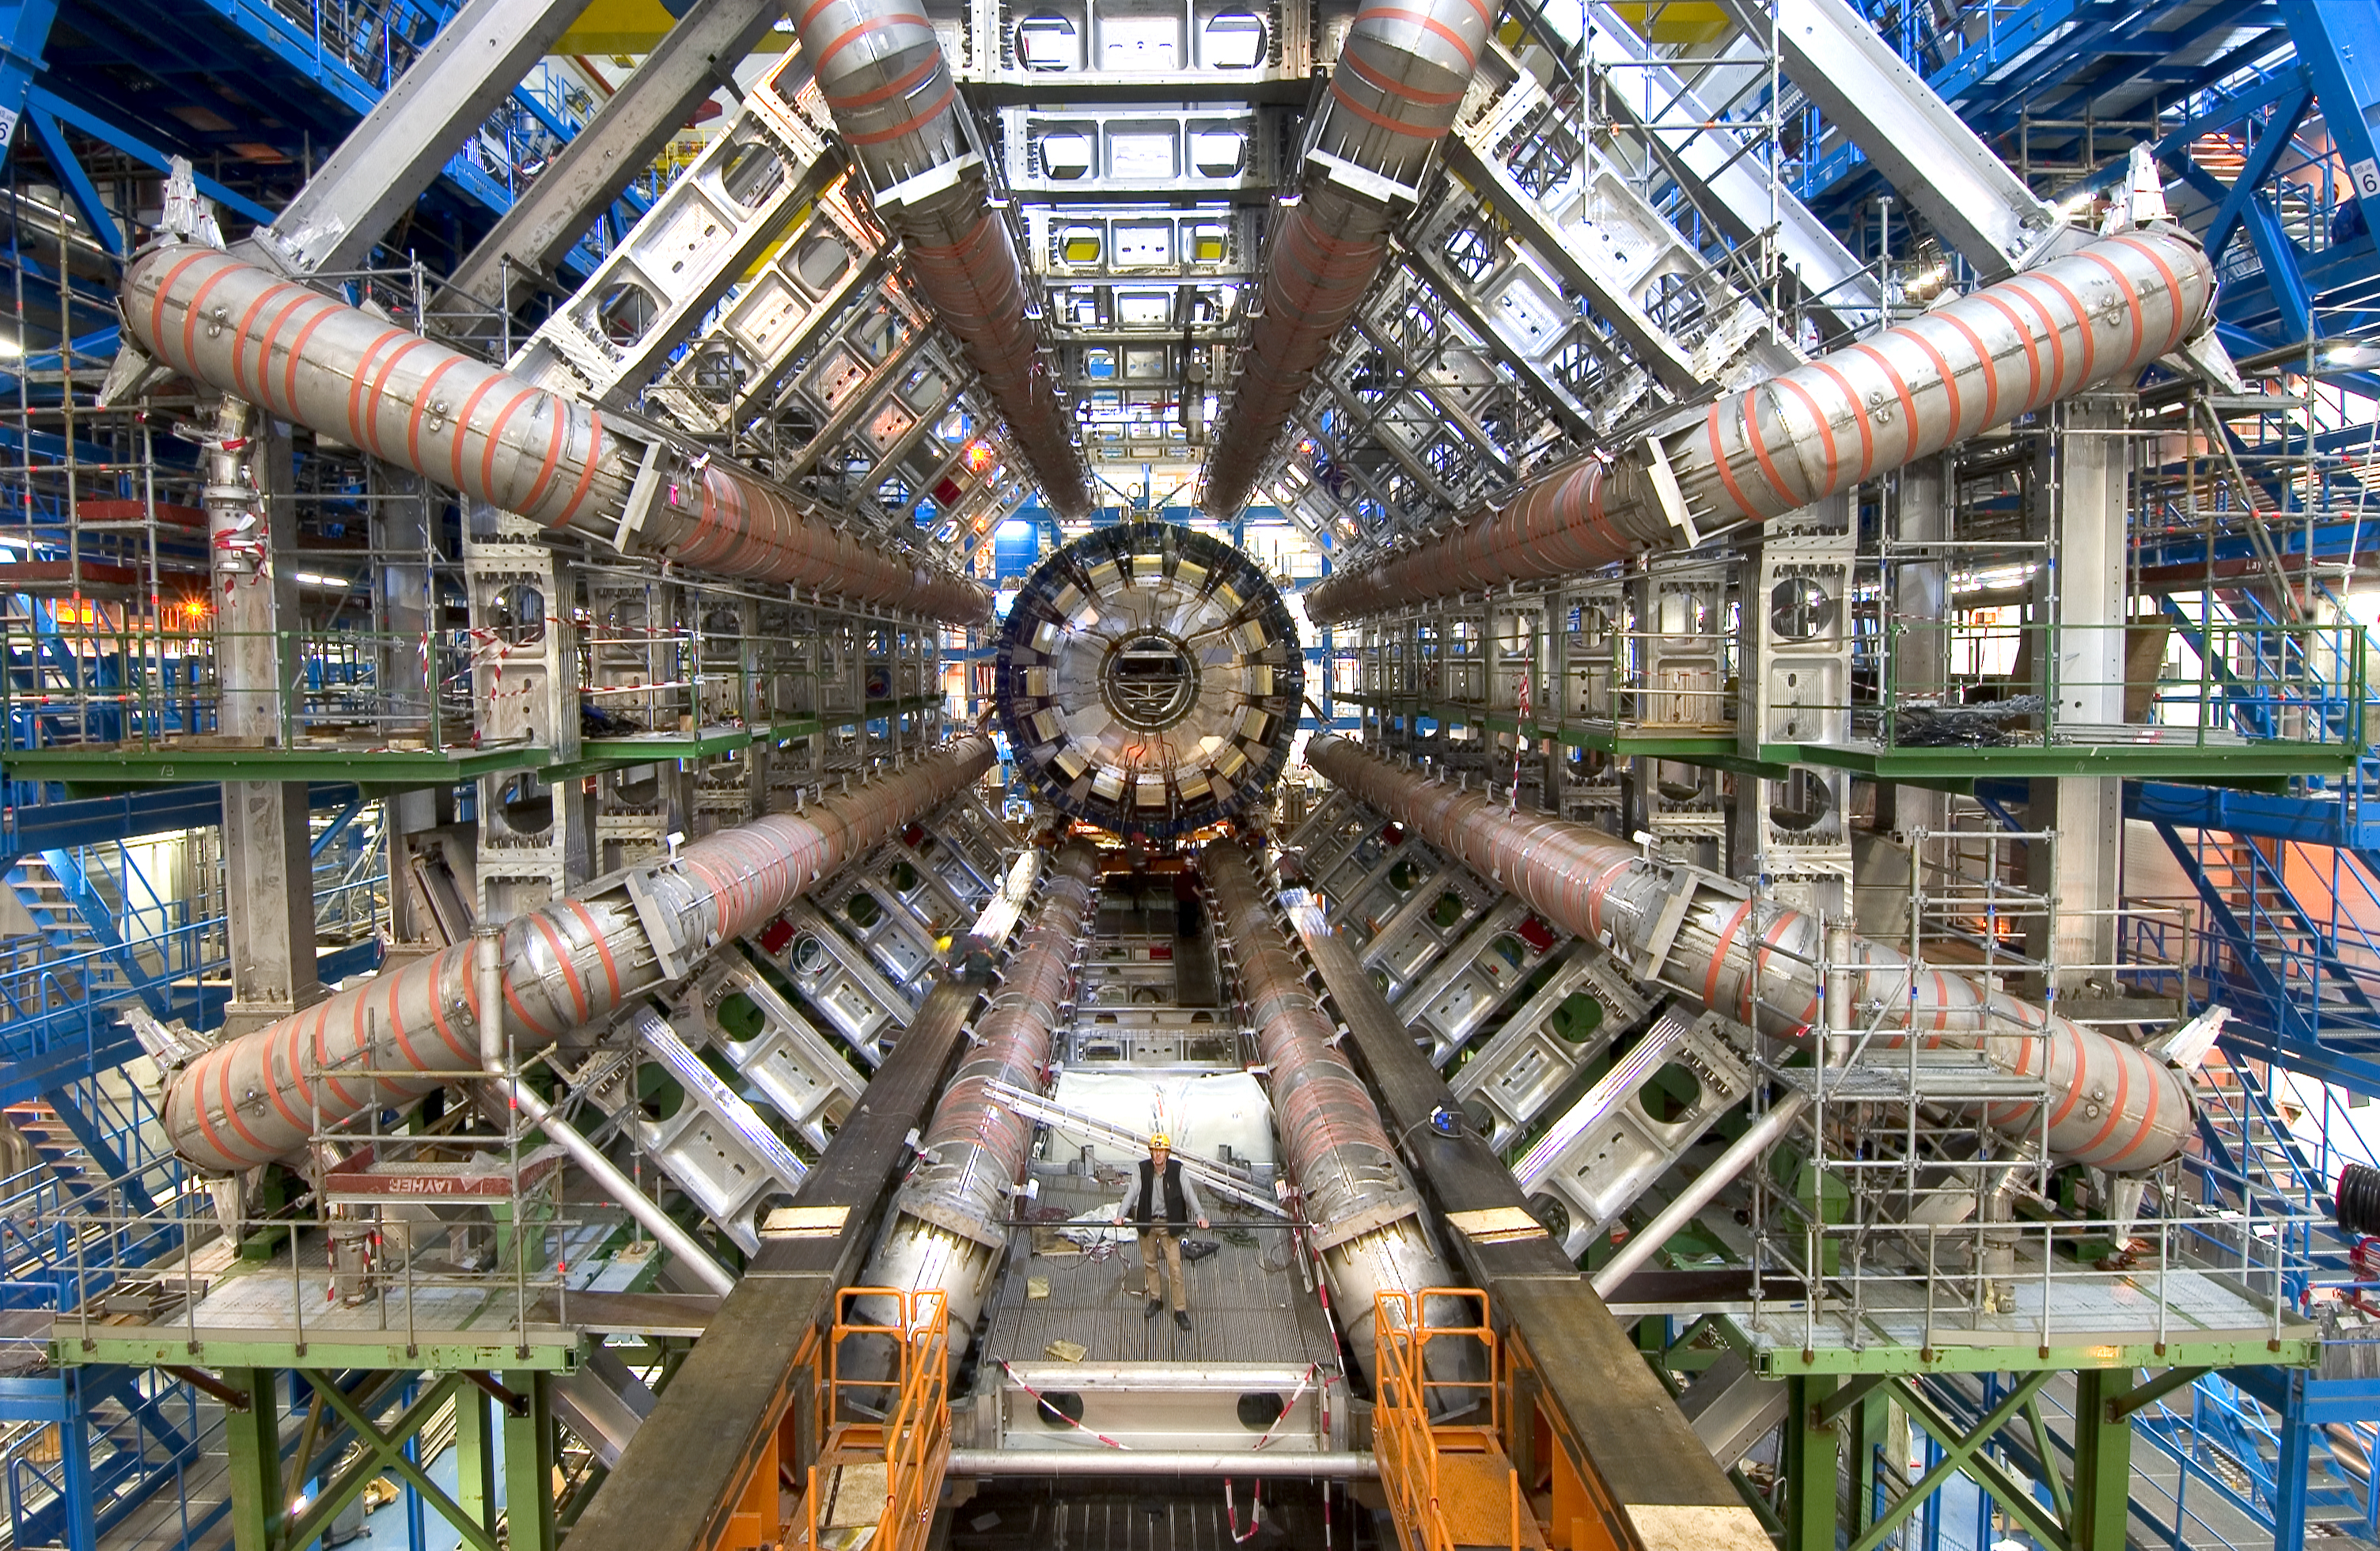 APOD: 2008 February 25 - Dawn of the Large Hadron Collider